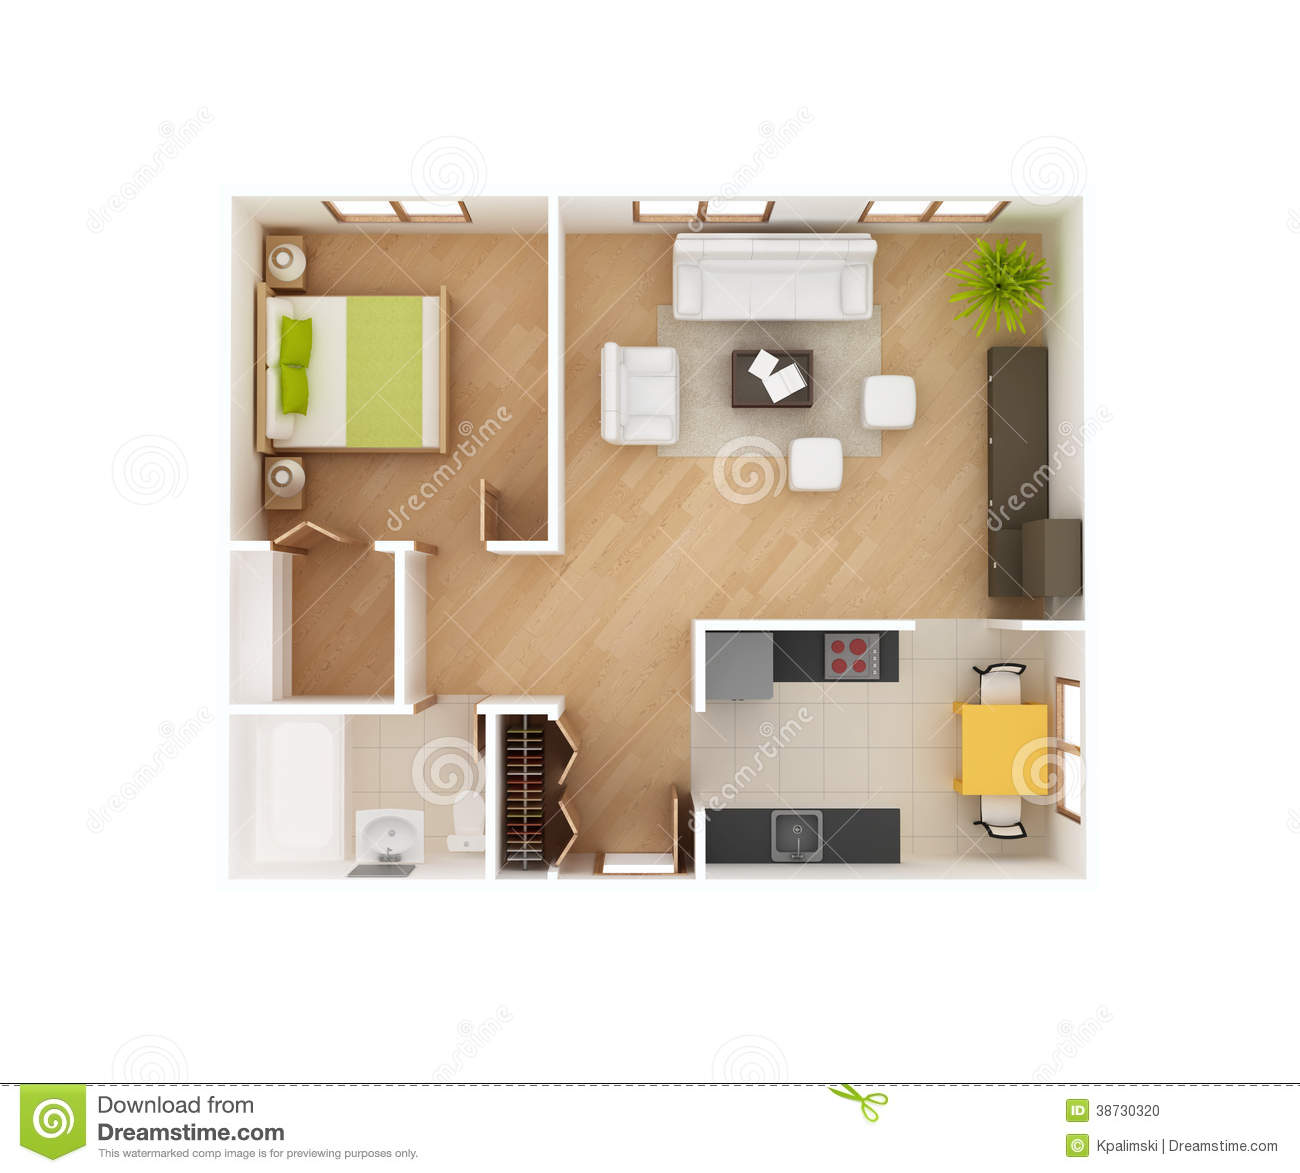 Basic 3D House Floor Plan Top View